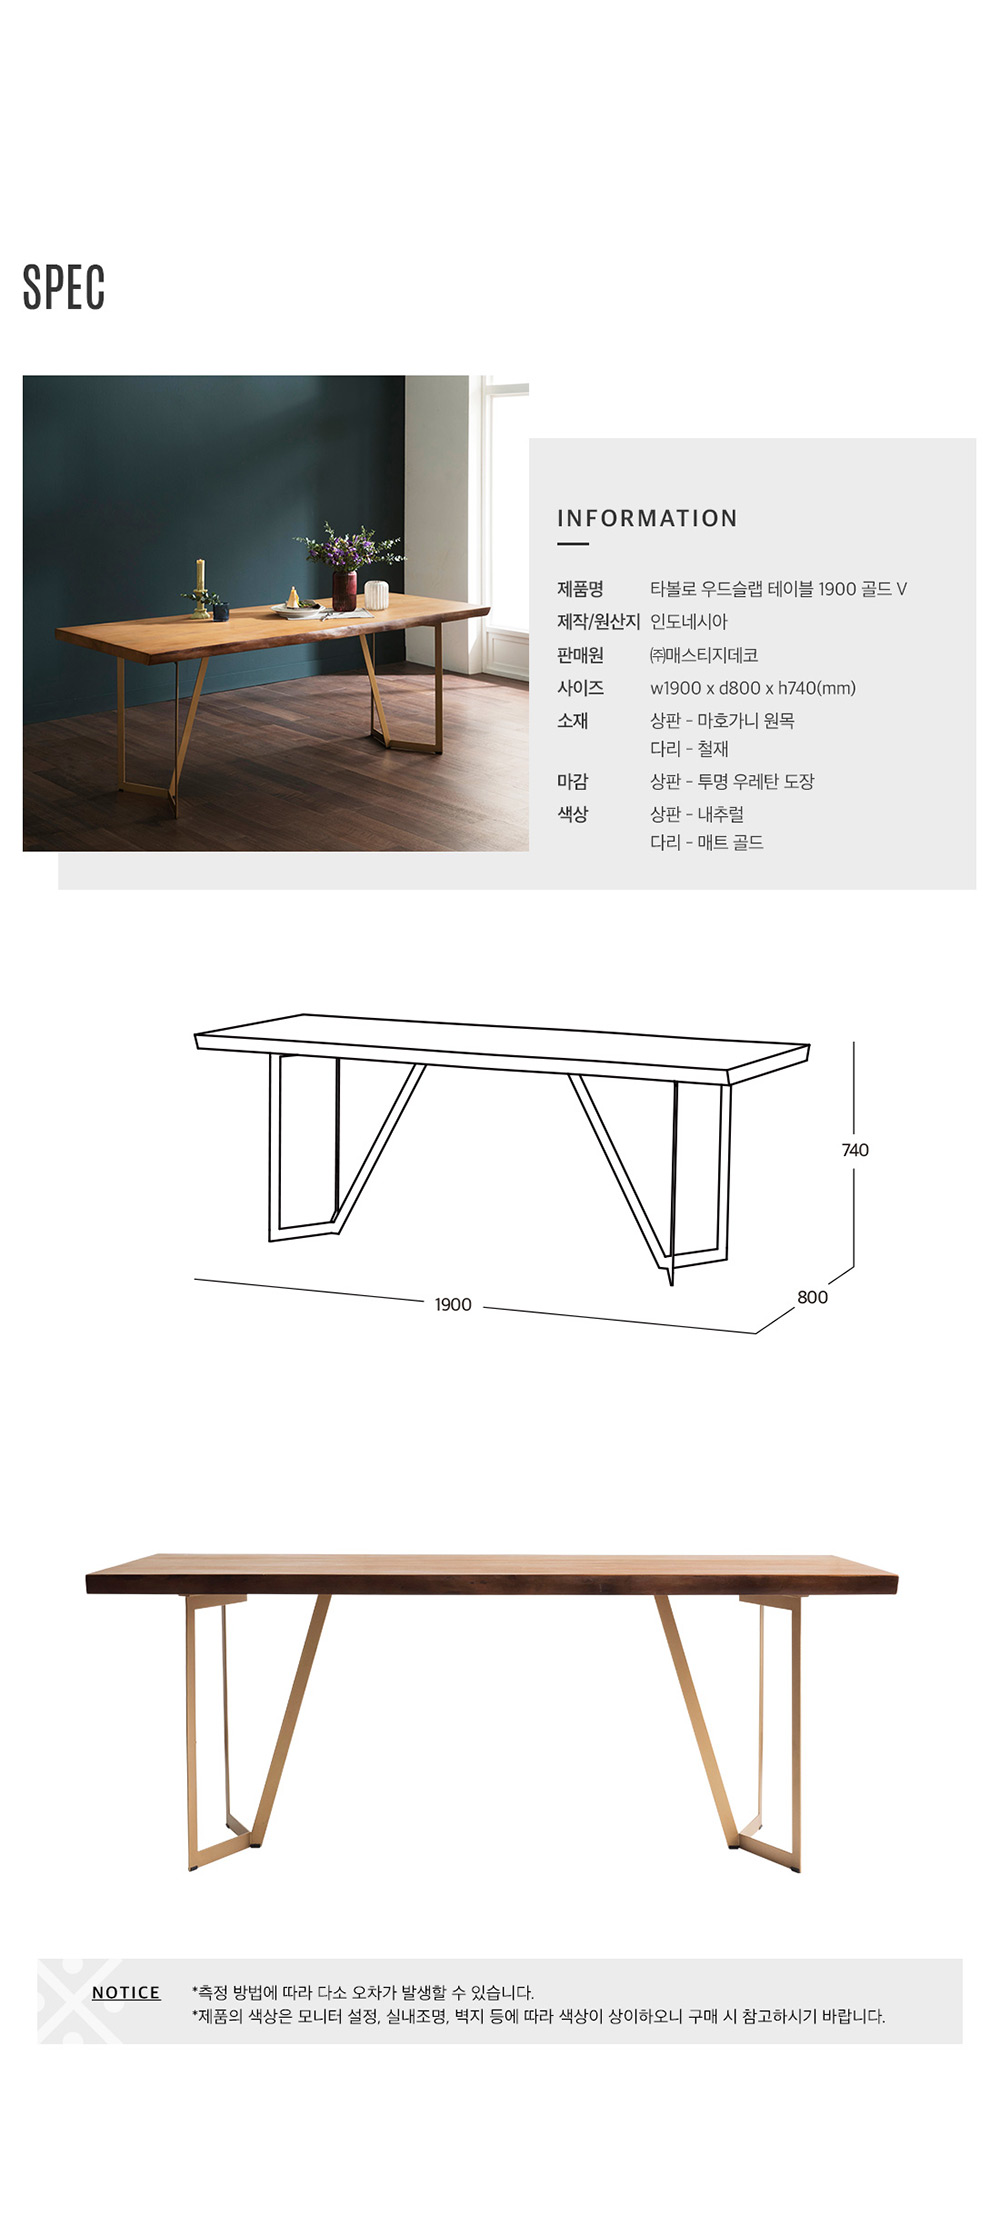 Tavolo_Scandinavian_Natural_Woodslab_Table_with_V_Legs_1900_(Gold)_Singapore_Specs_by_born_in_colour